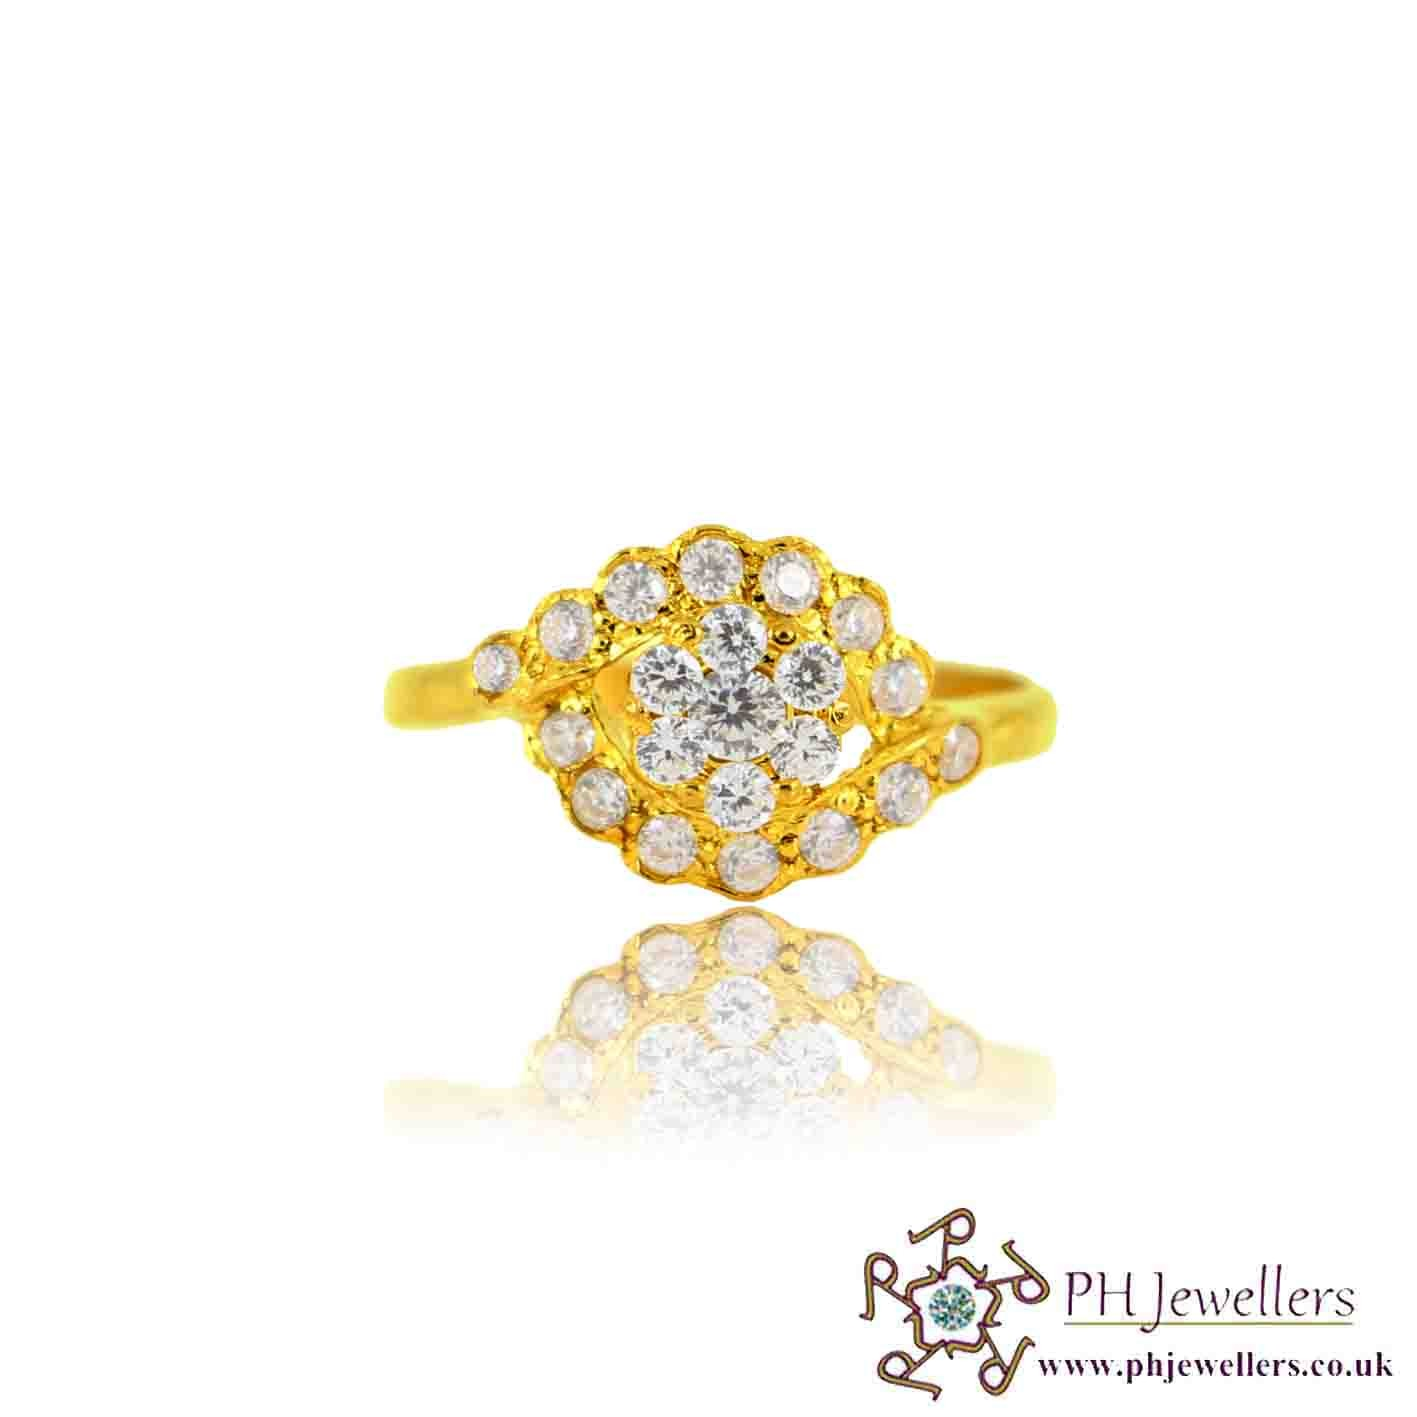 22ct 916 Yellow Gold Hallmark  Ring CZ Size I SR135